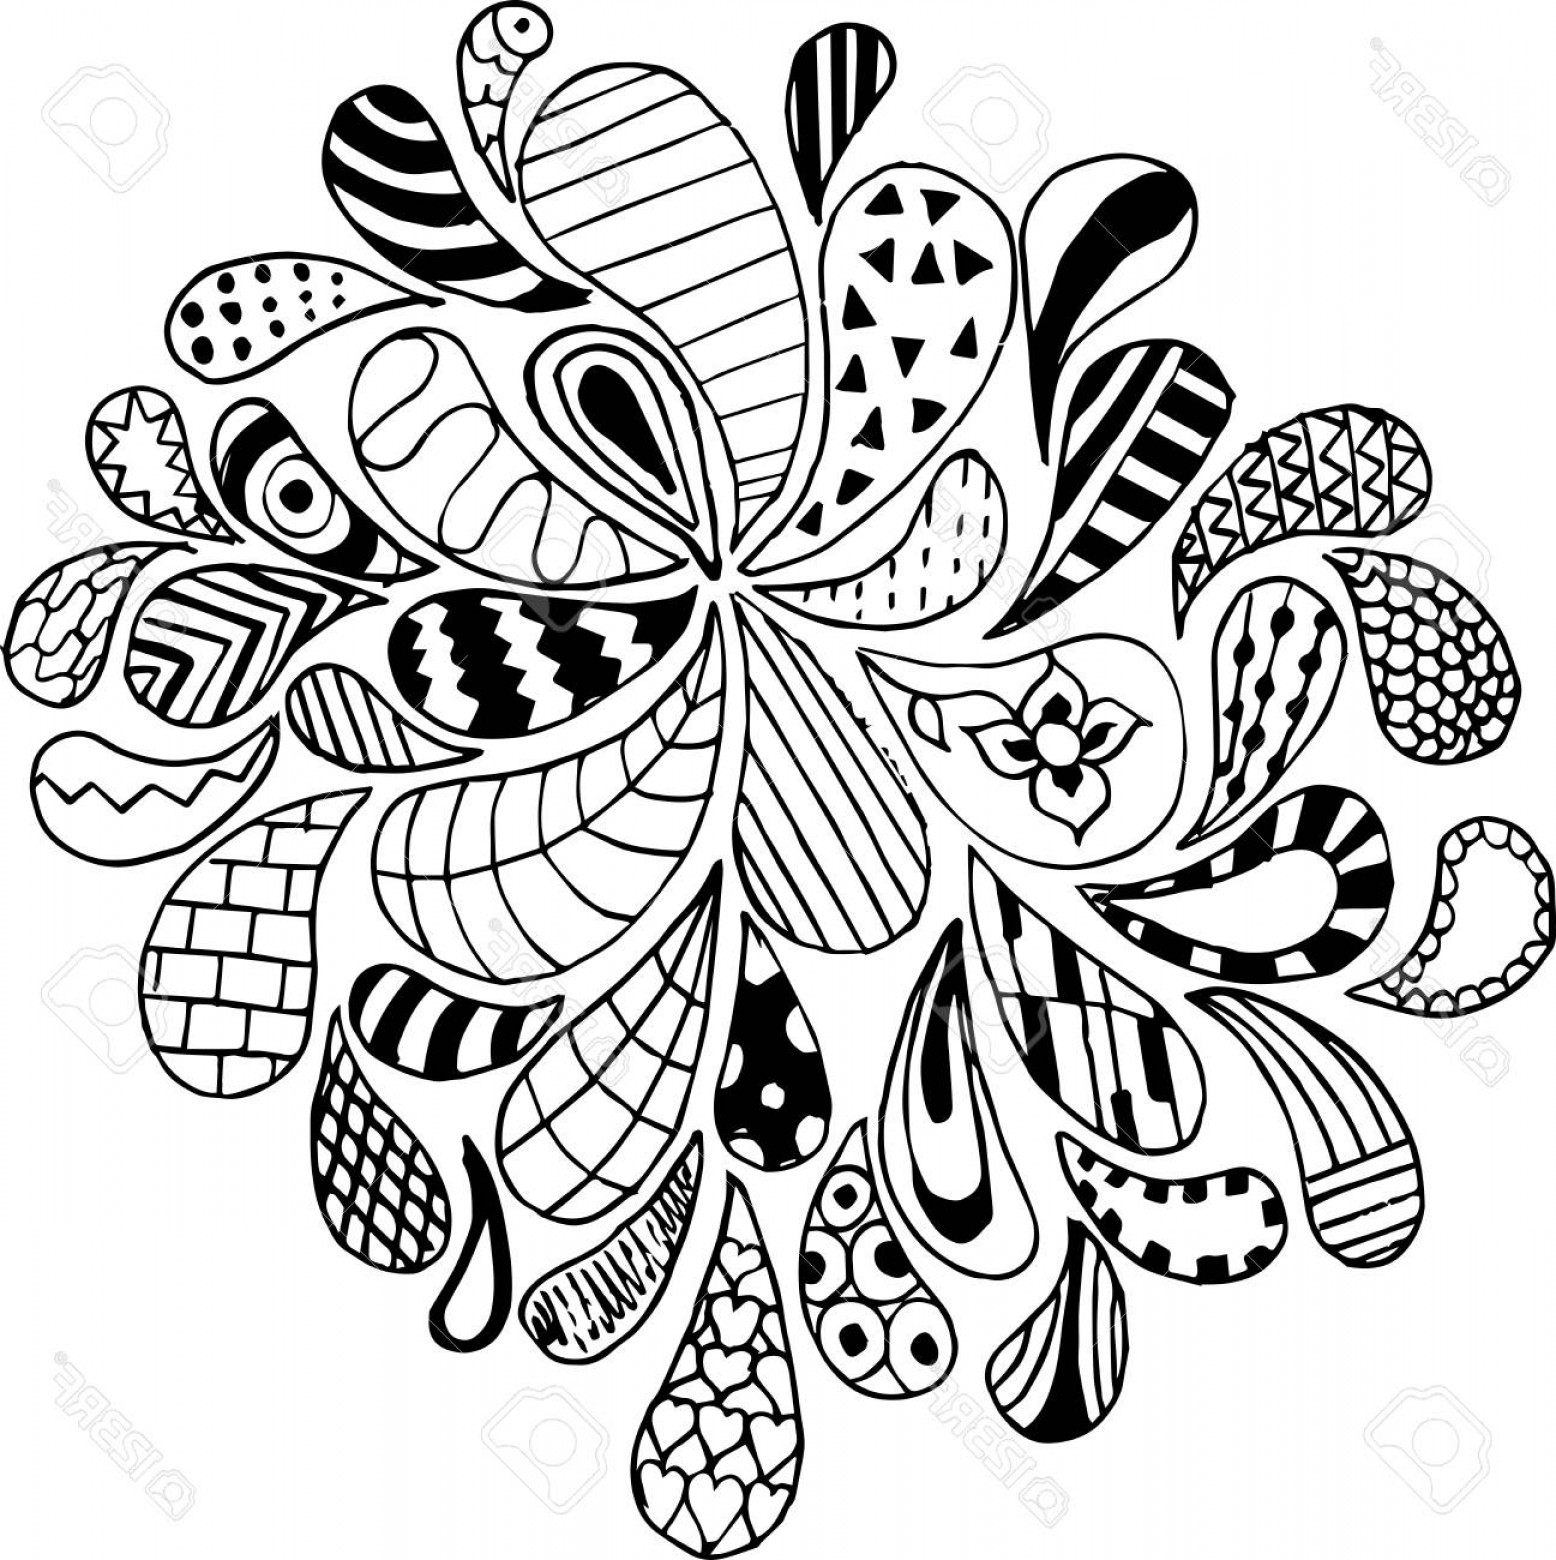 Zentangle Vector: Photostock Vector Doodles Zentangle Vector Illustration Pattern Freehand Pencil Pattern Zen Art Print For Coloring Boo